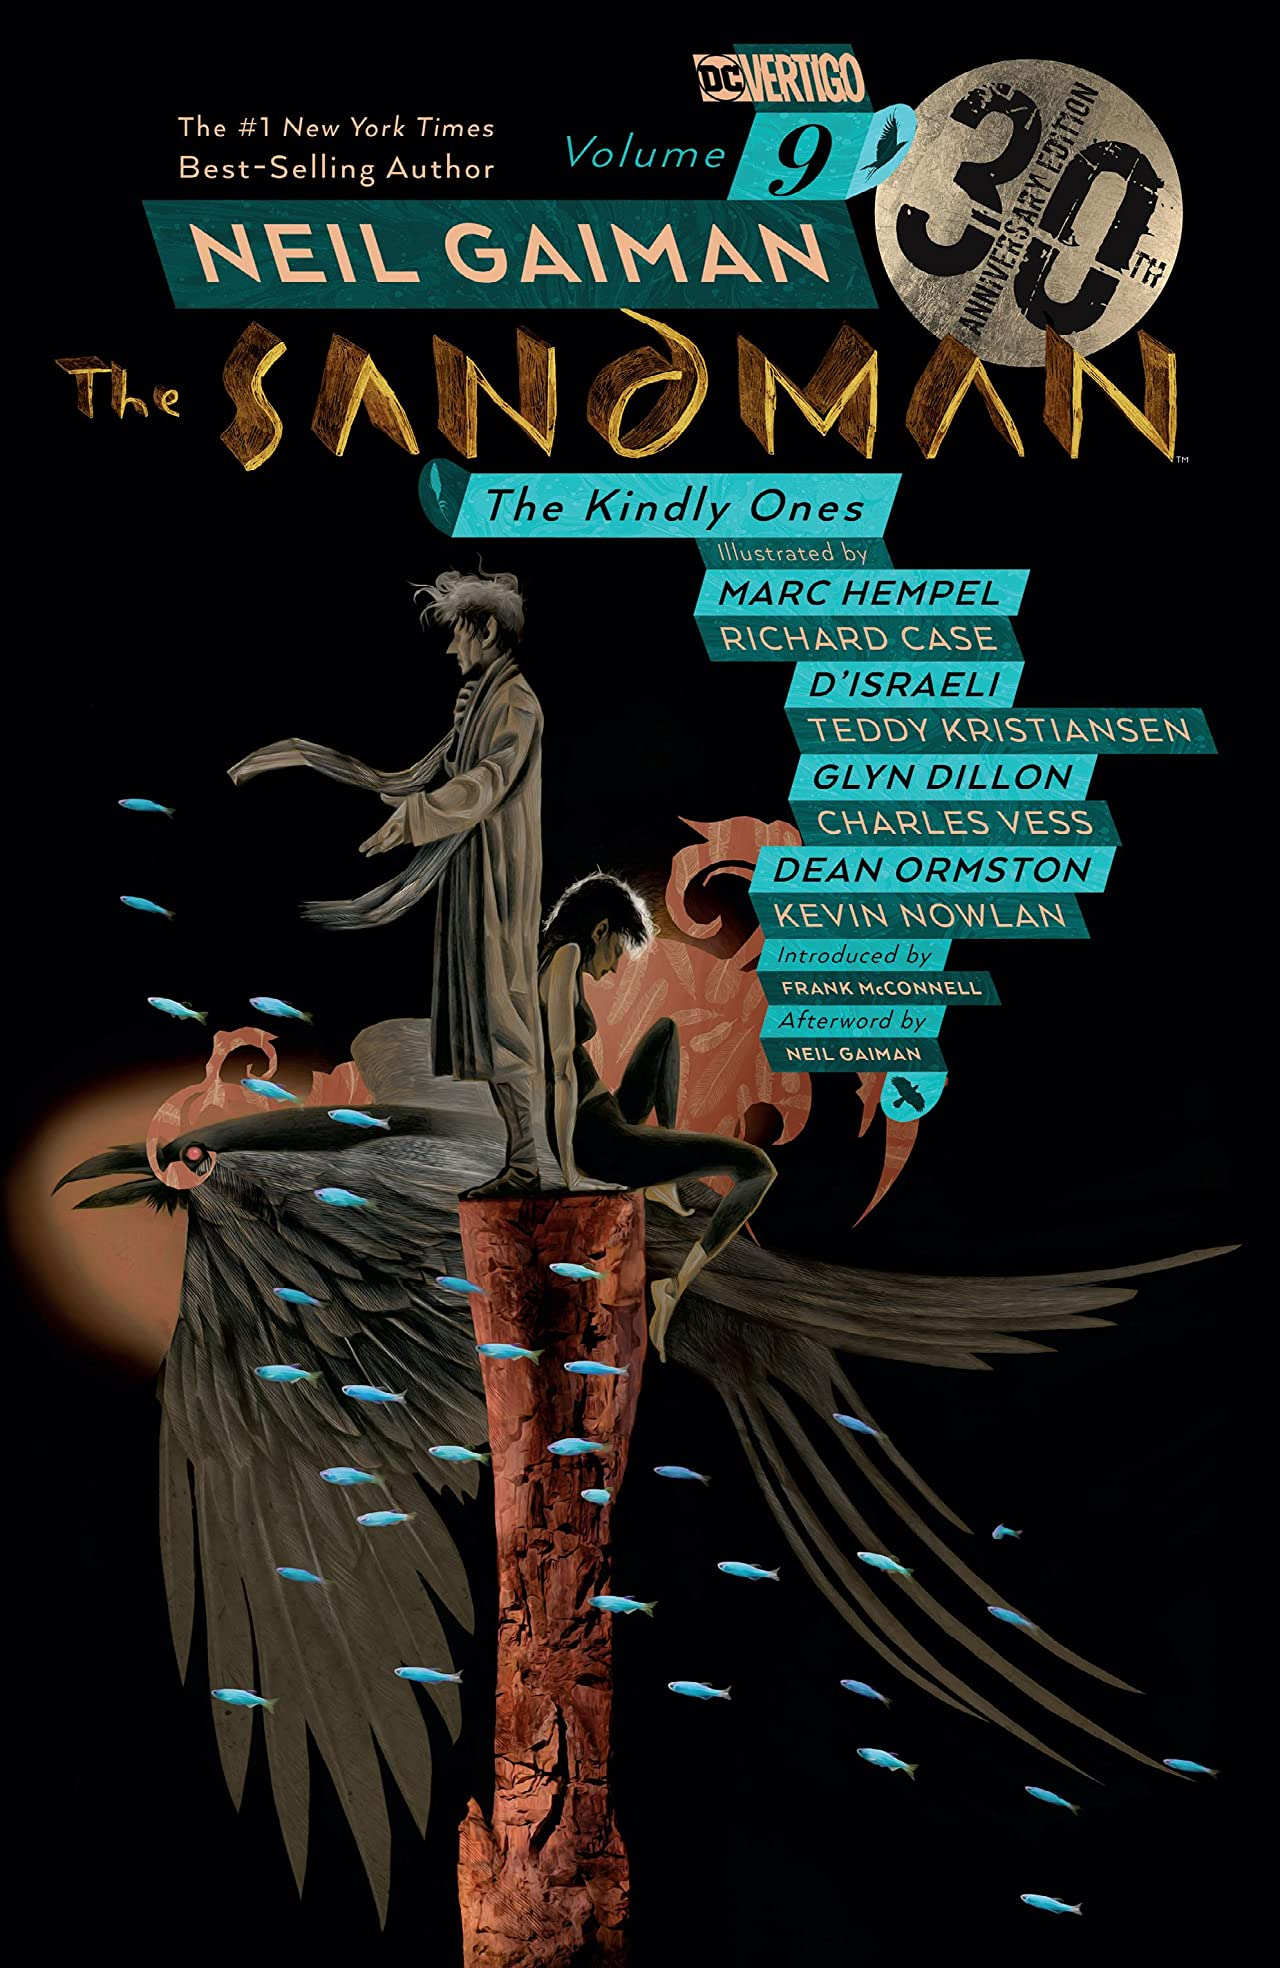 The Sandman, Vol. 9: The Kindly Ones - 30th Anniversary Edition by Neil Gaiman